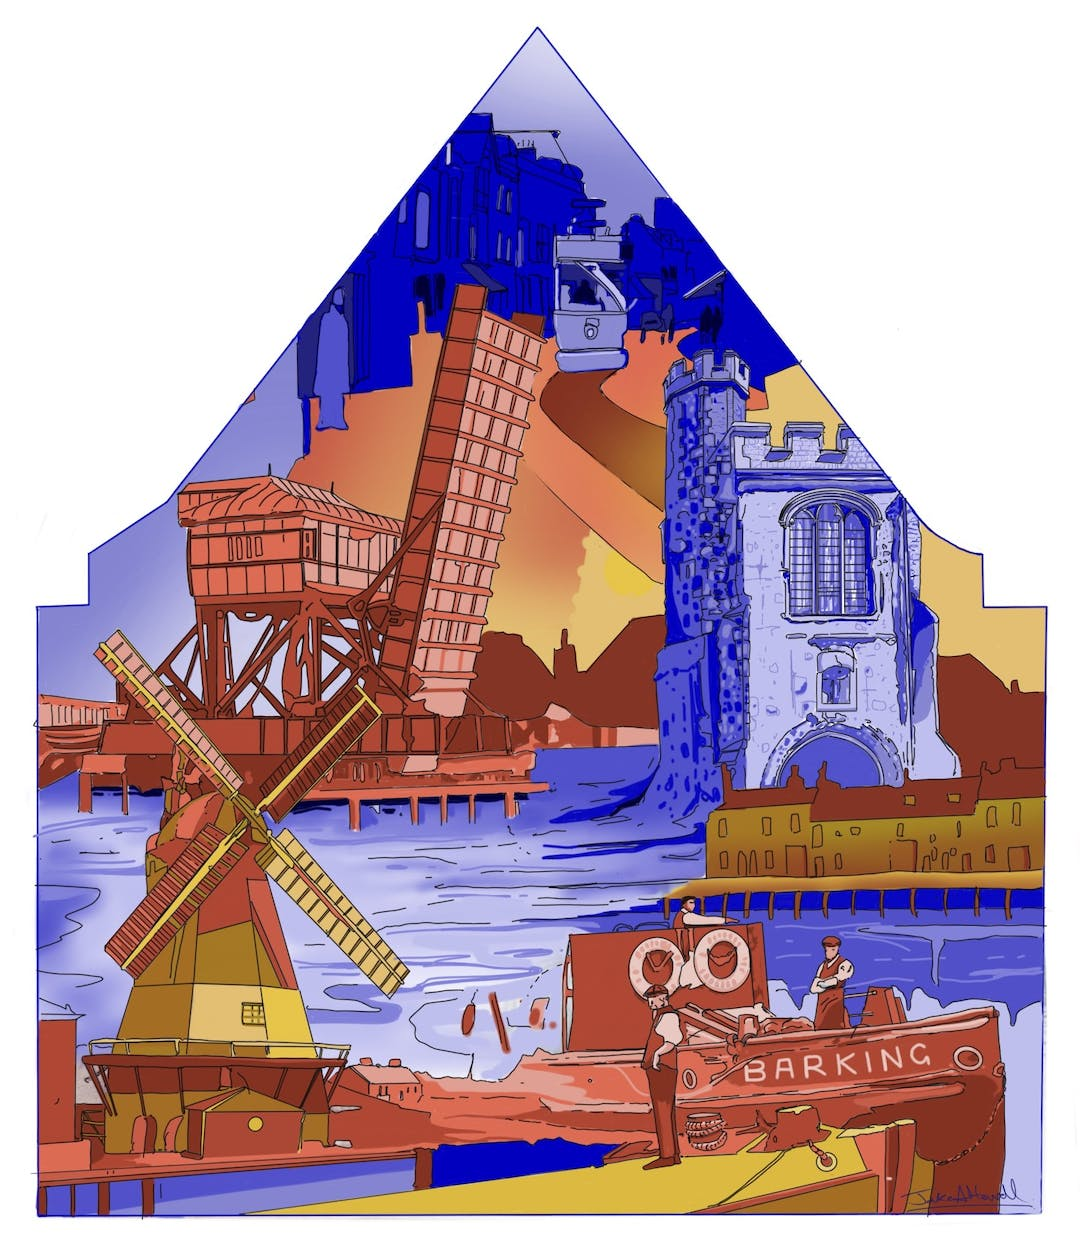 Jake has designed a modern take on John H King's Draper's - art display showing landmark buildings and trades from Barking's heritage - to celebrate the Barking Town Charter of 1931. This Street Art Mural is a 2021 take on Barking's heritage, much of it lost but still valued by residents past and present and the stories have relevance for the newest visitors to this ancient town...